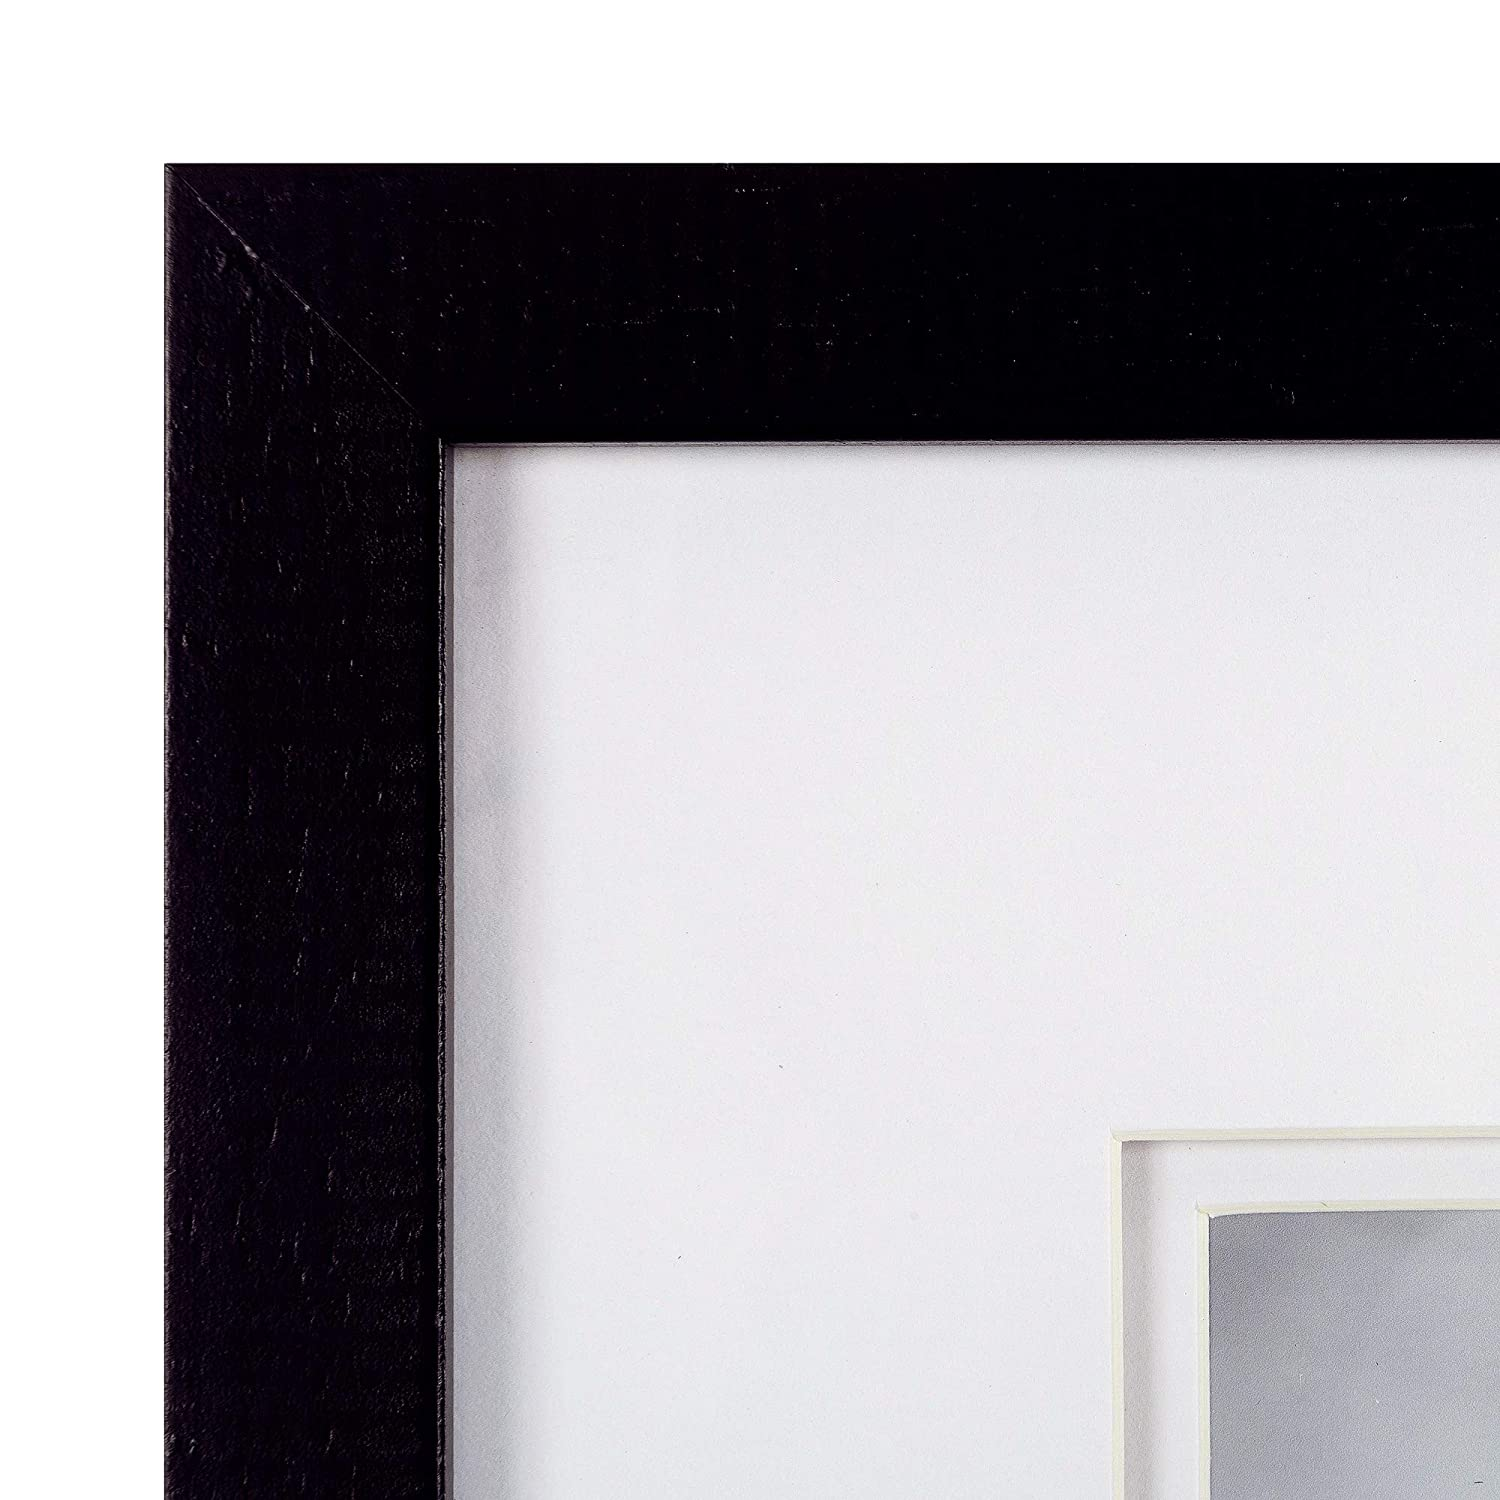 Frame Kit Small NBG Home 18FW1611A Everly Hart Set of 9 Piece Black Square Photo Double White Mat Wall Gallery